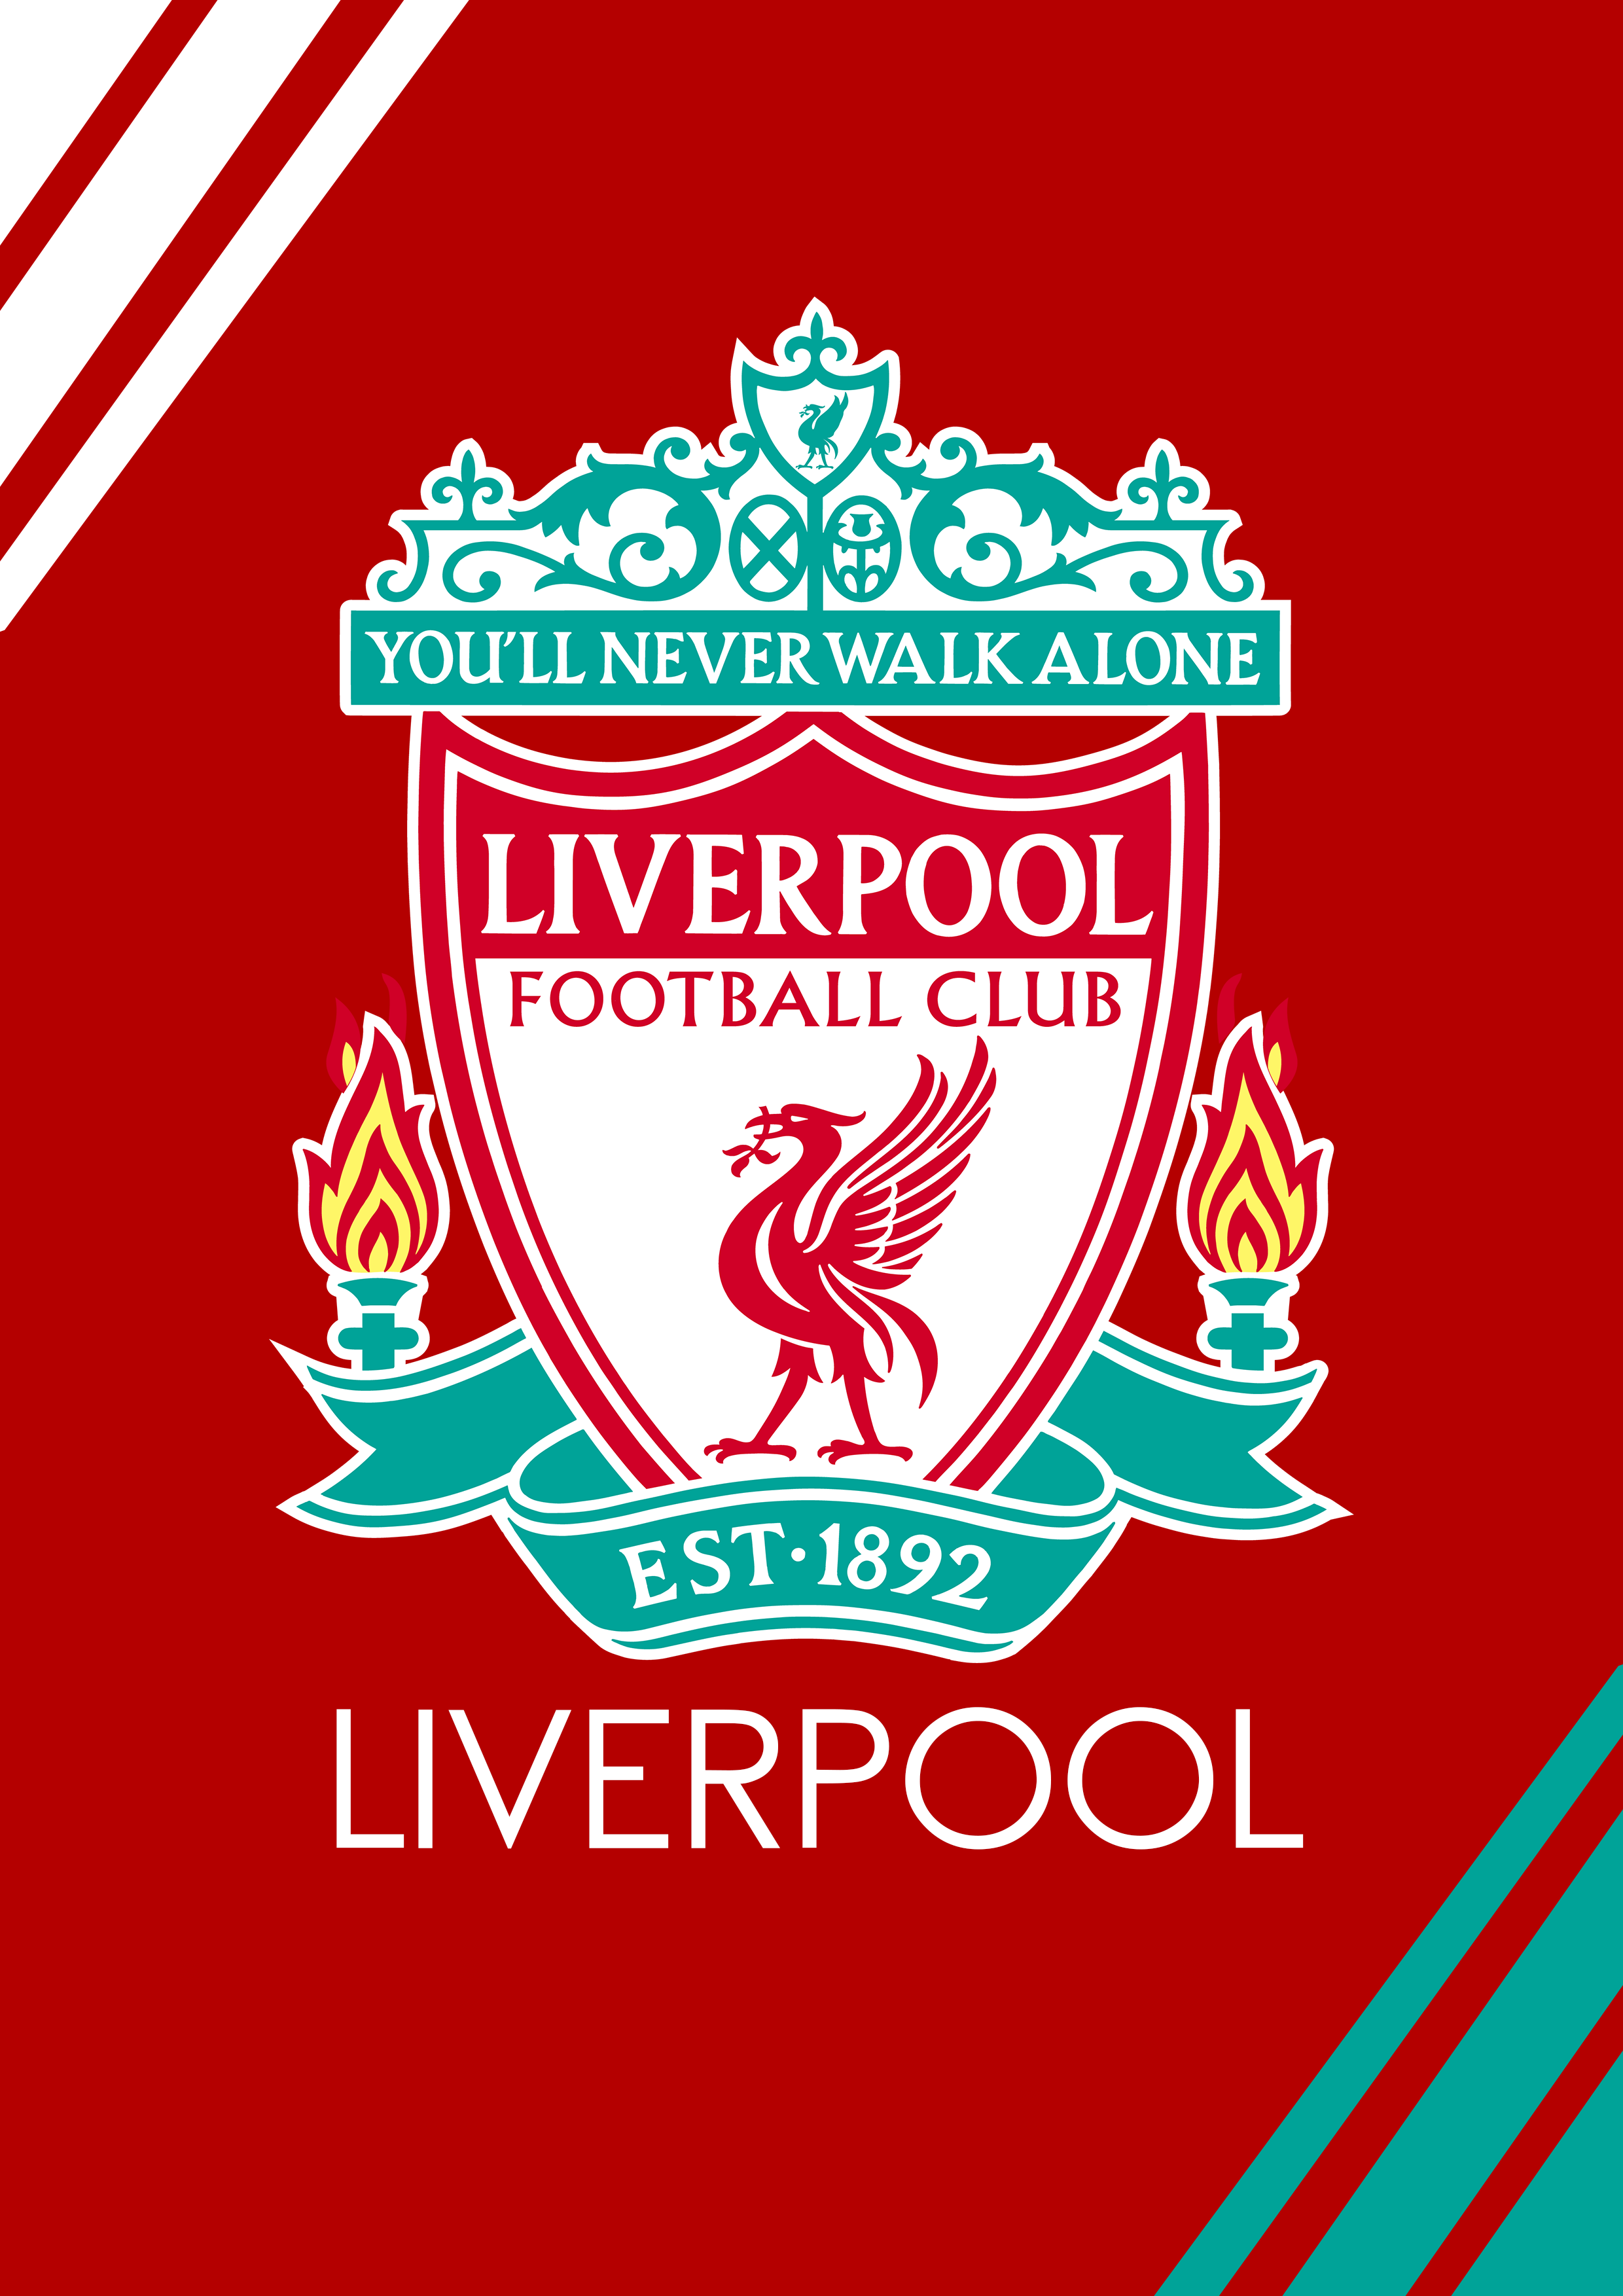 List of Great Manchester United Wallpapers Plays Transfer: Liverpool sign Manchester City winger